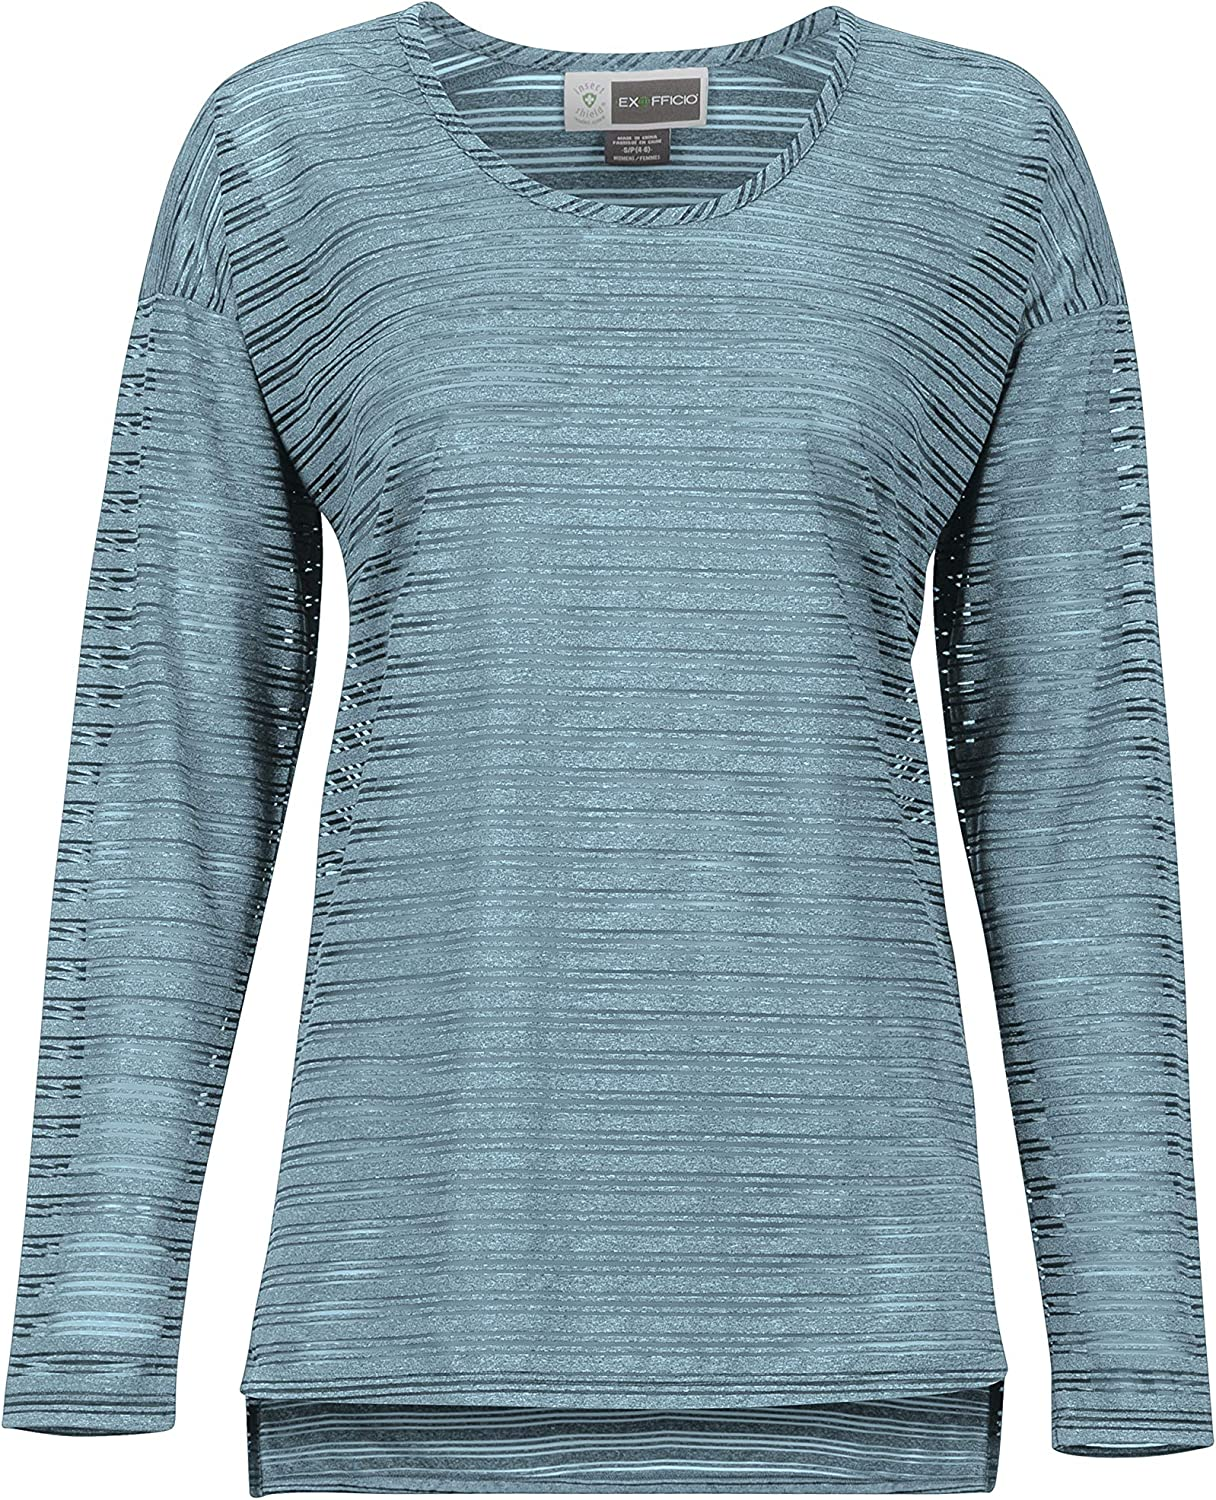 ExOfficio Women's BugsAway Modena Long Sleeve Tunic